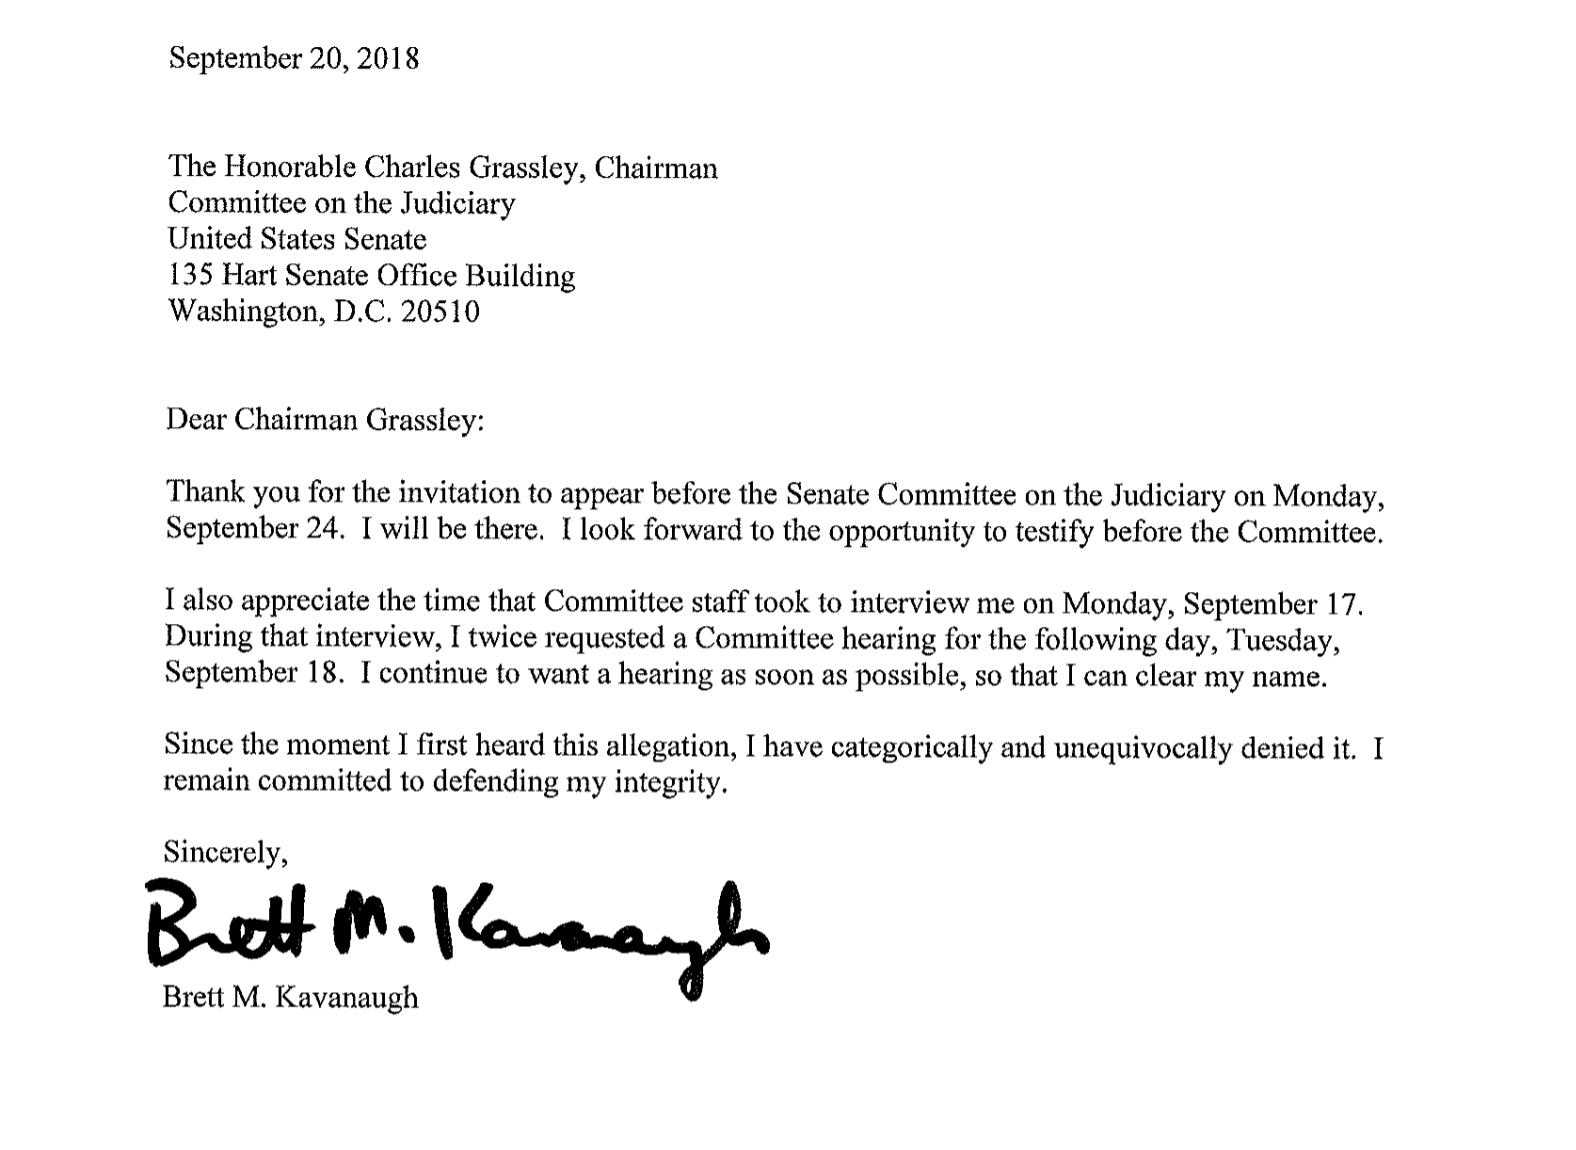 Brett Kavanaugh's Sept. 20 letter to the Senate Judiciary Committee (Screenshot)